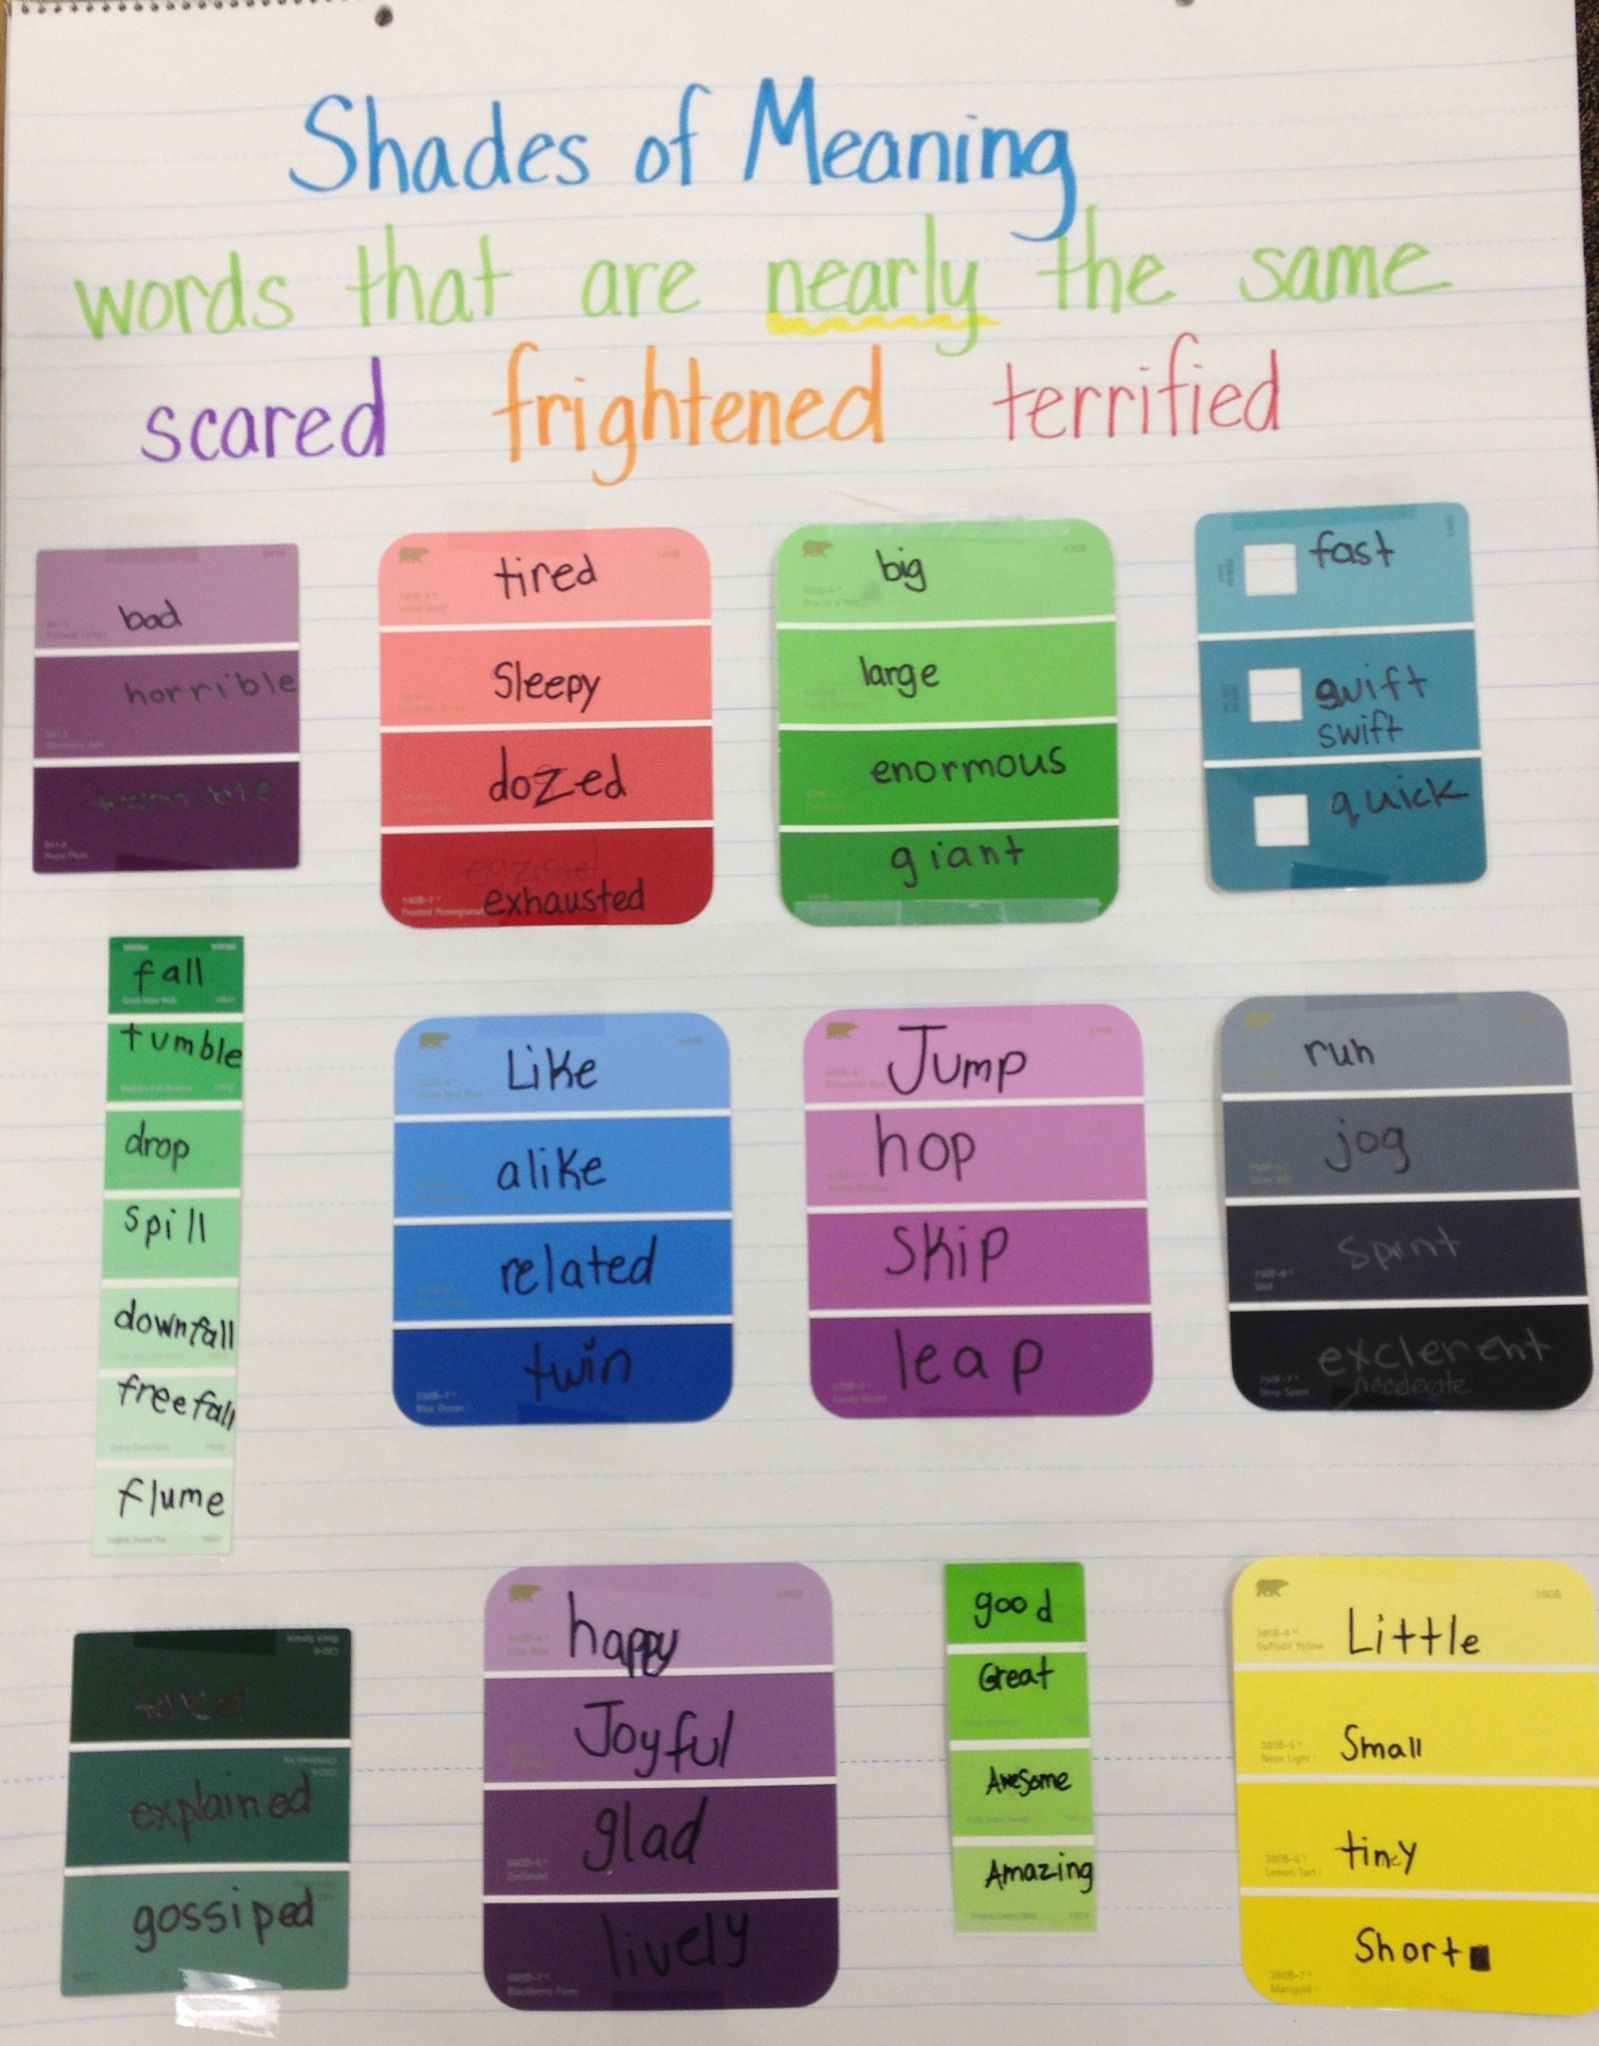 medium resolution of Pin by Deb Walsh on Teaching - anchor charts/posters Reading   Shades of  meaning